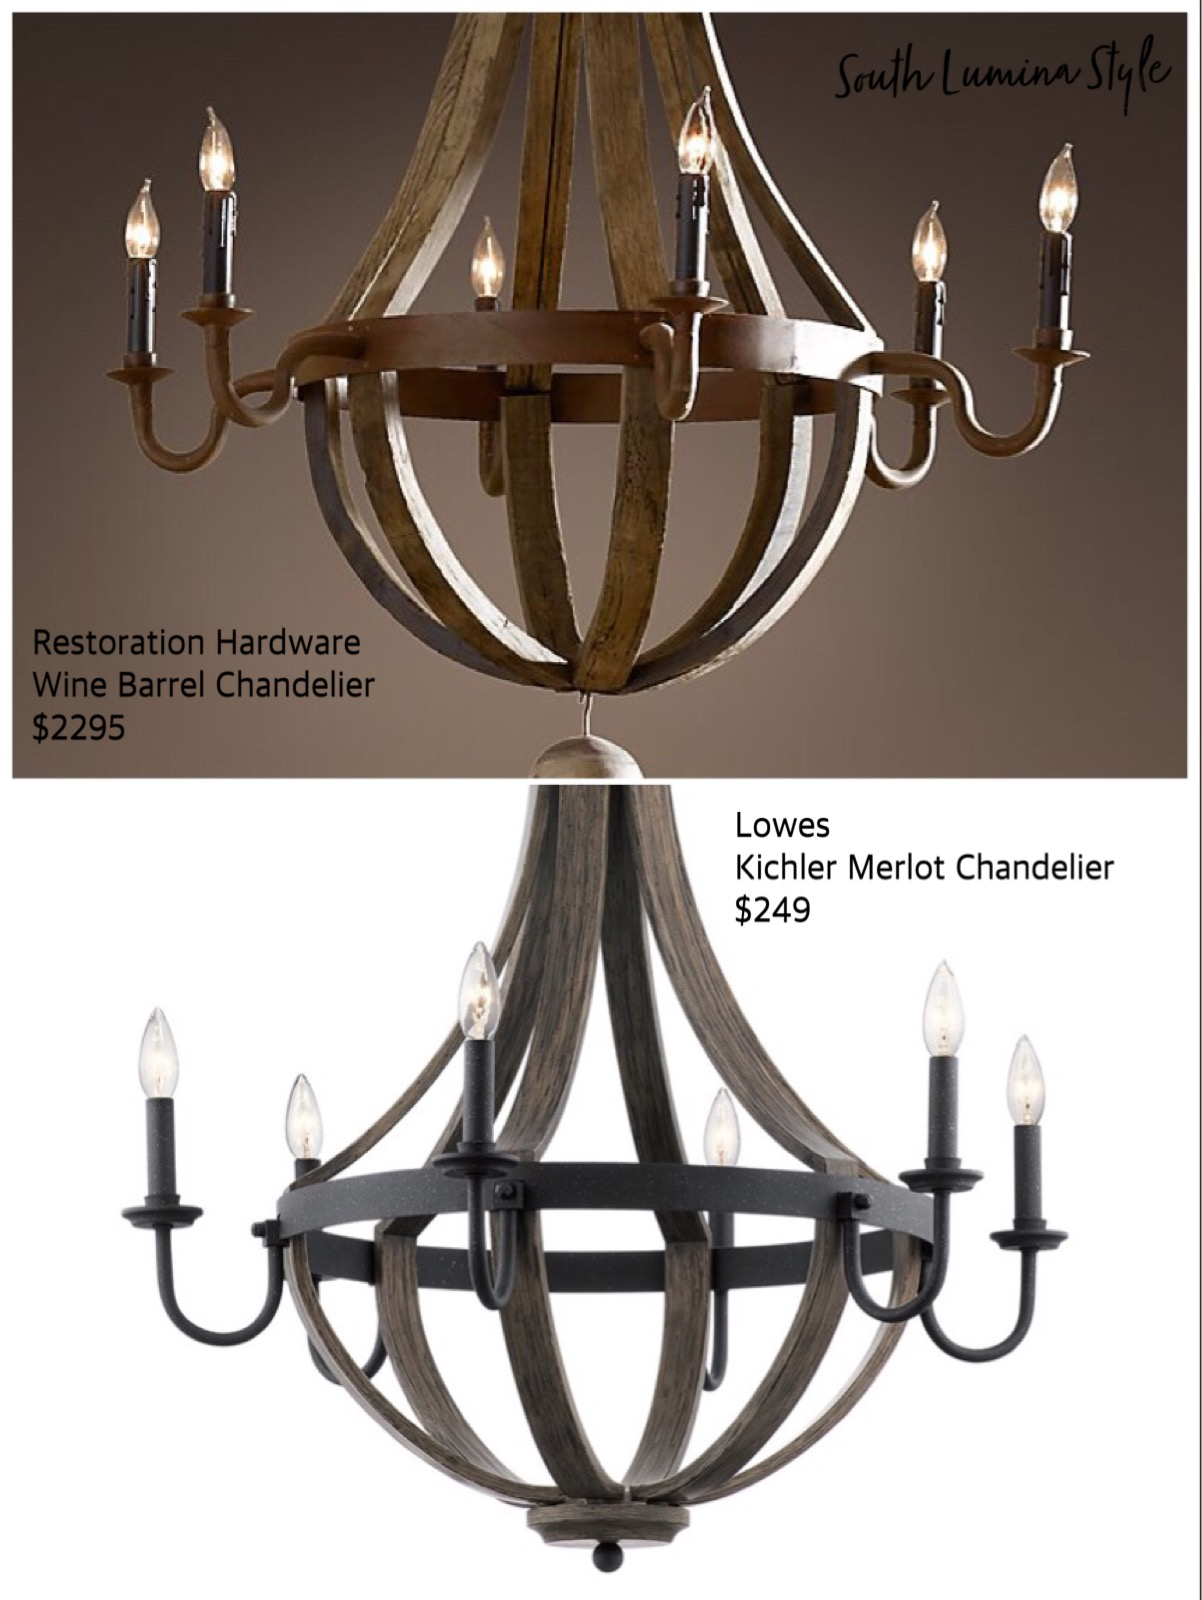 Wine Barrel Chandelier A Beer Bud South Lumina Style